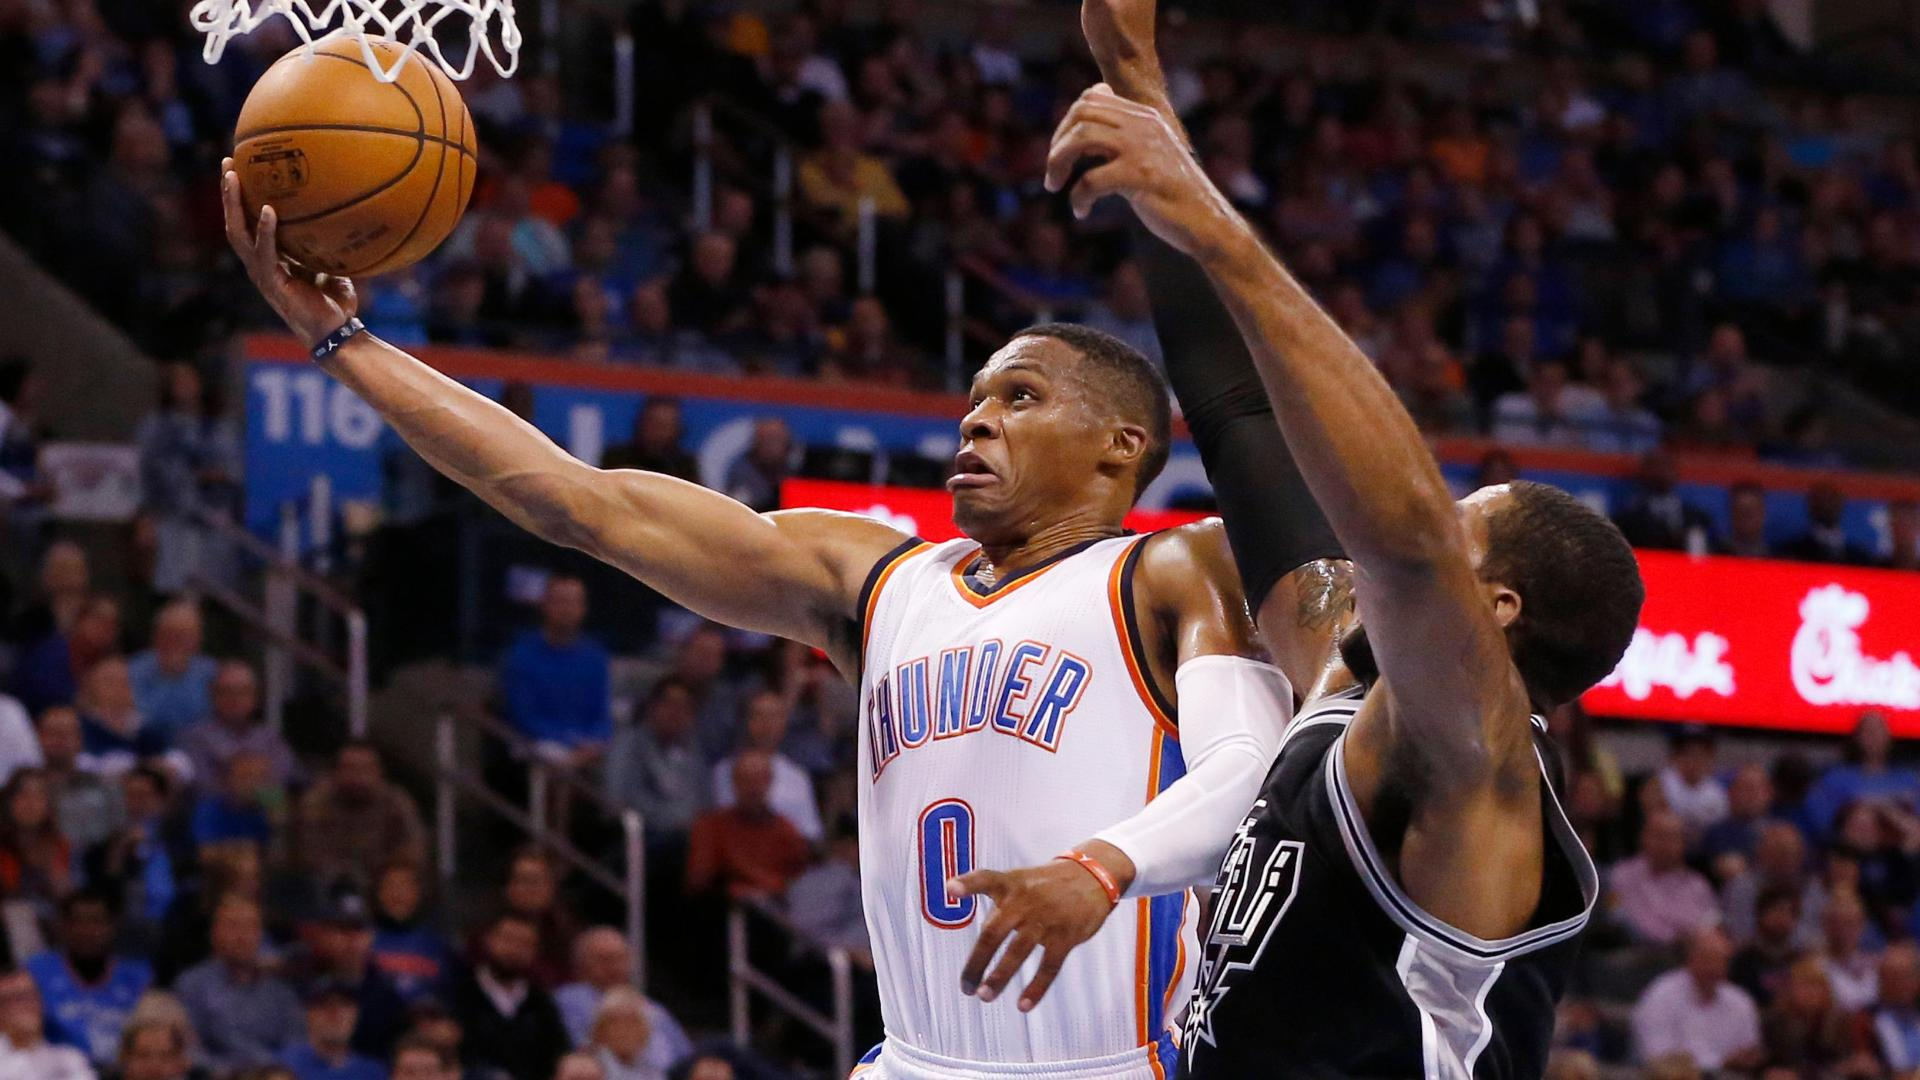 http://a.espncdn.com/media/motion/2015/1029/dm_151028_Thunder_Spurs_Highlight191/dm_151028_Thunder_Spurs_Highlight191.jpg